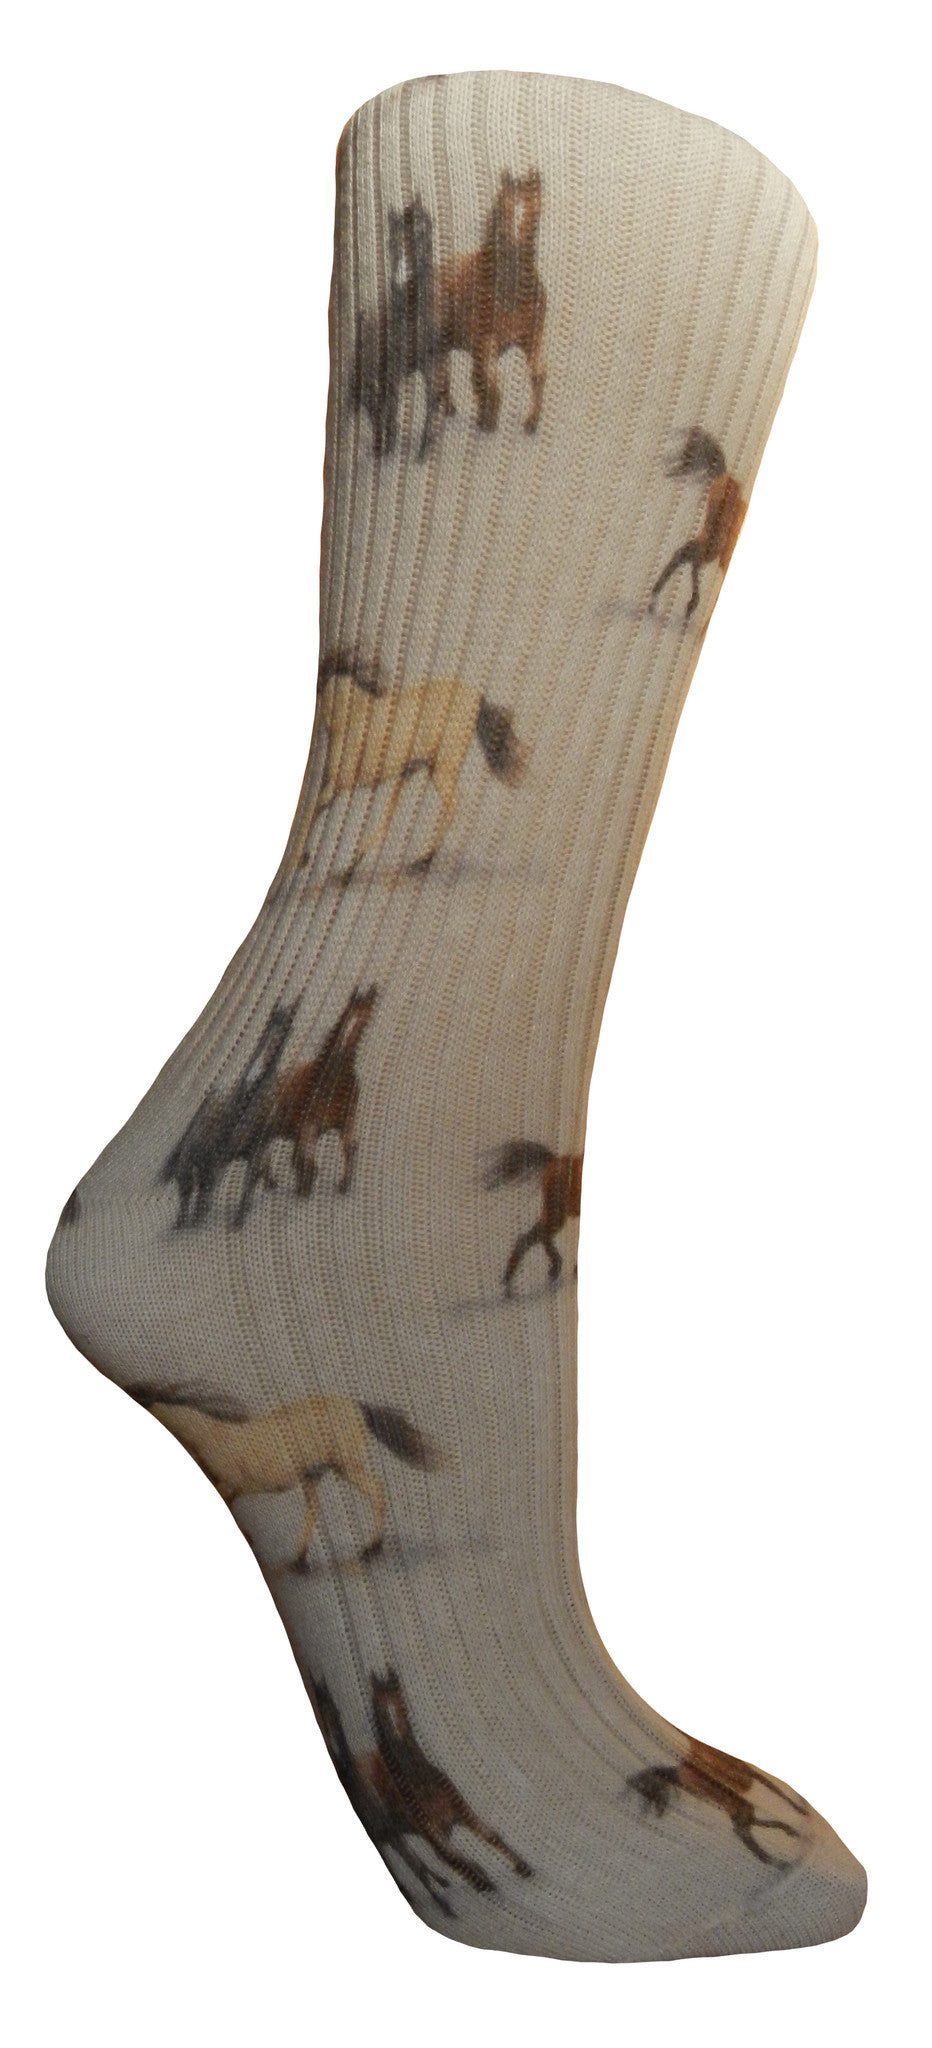 Soxtrot Cotton Sox - Horse Country